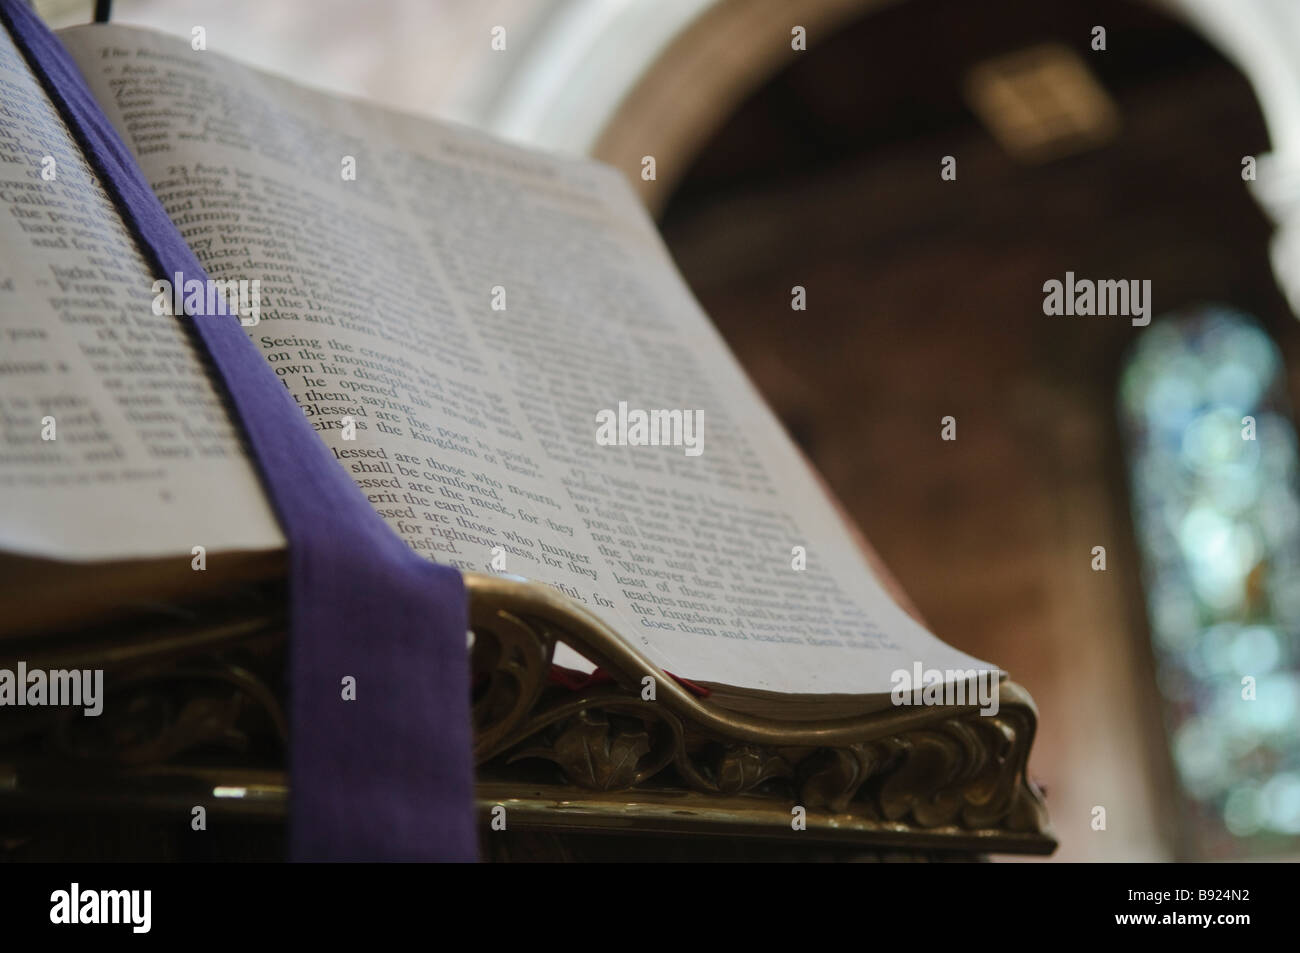 Bible on pulpitin a cathedral, open at Matthew Chapter 5. Stock Photo